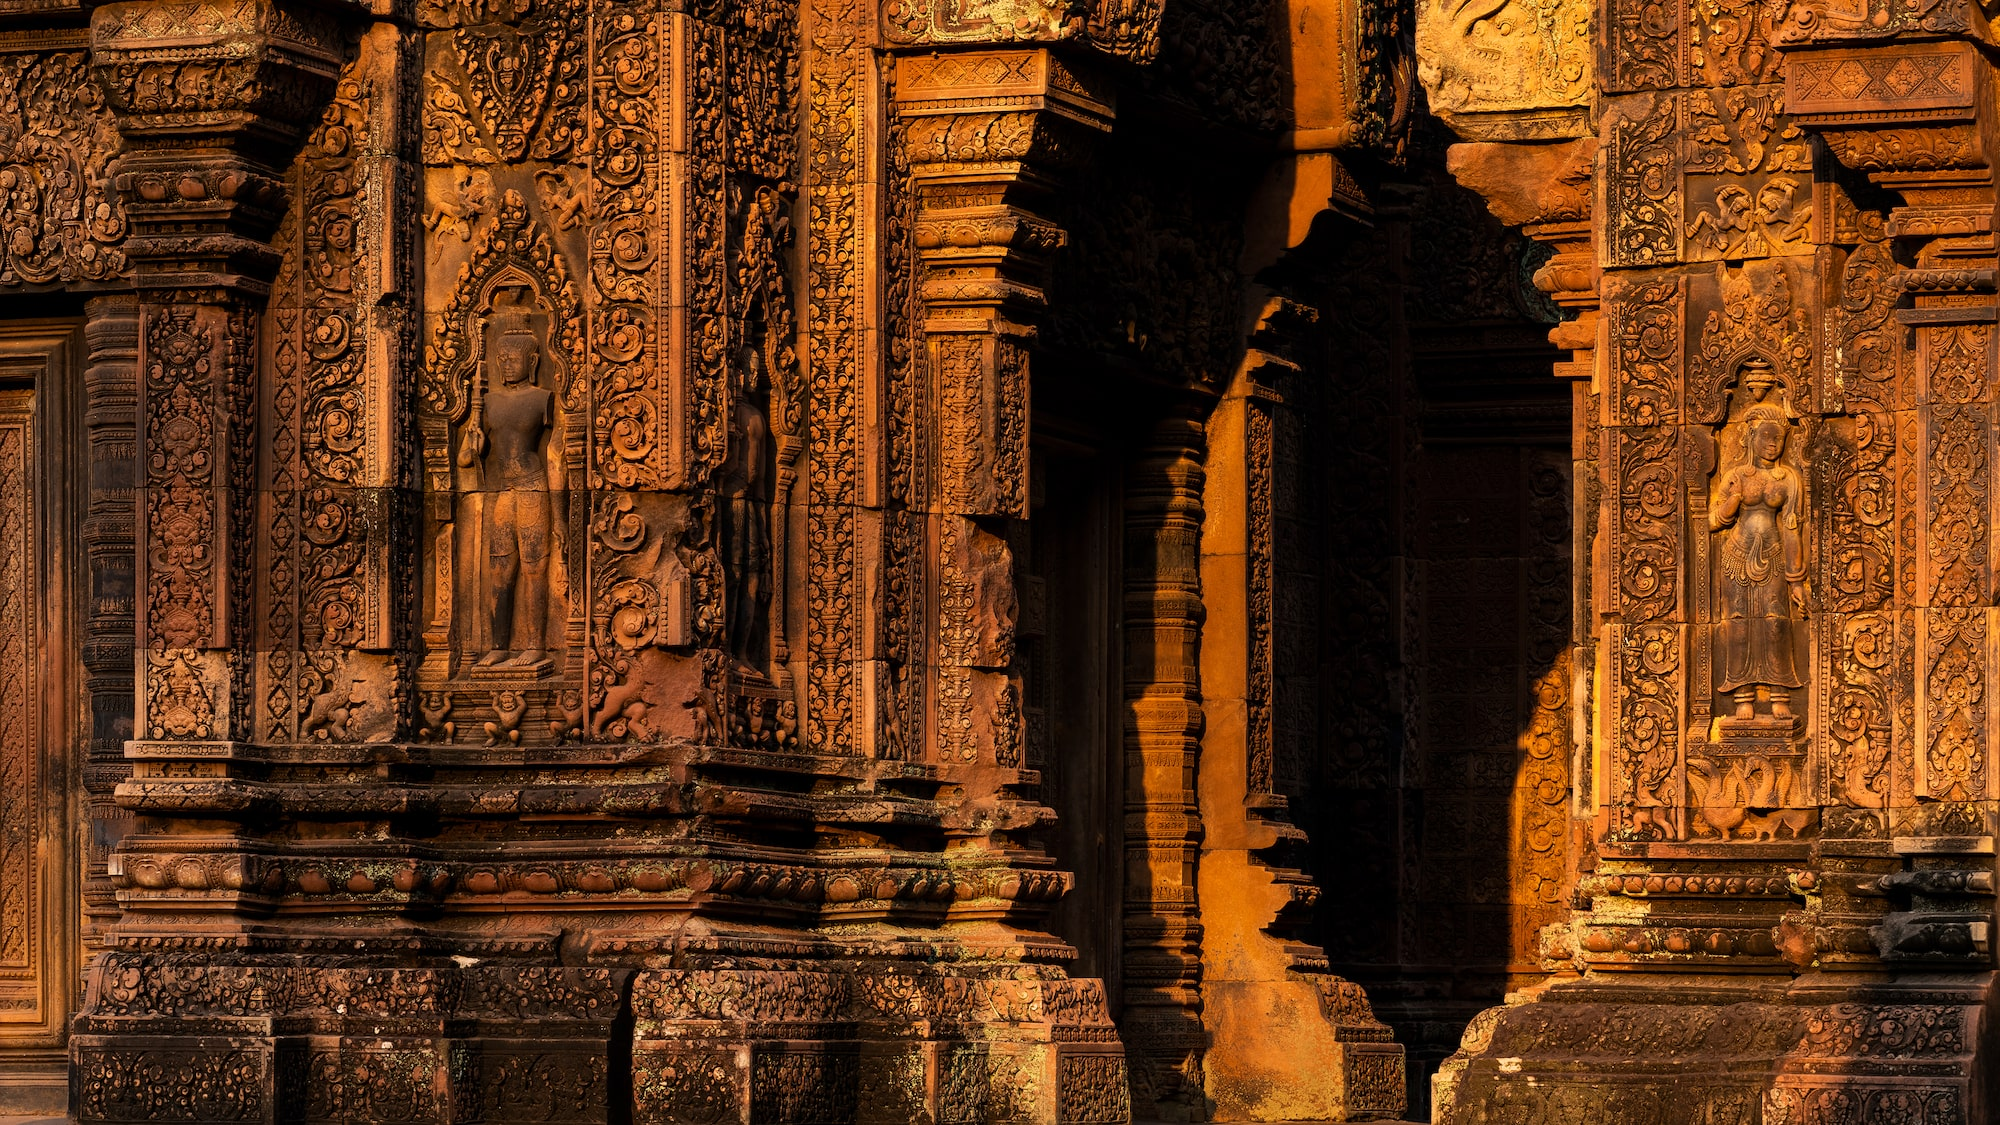 Carvings on door and wall in evening light in Banteay Srei